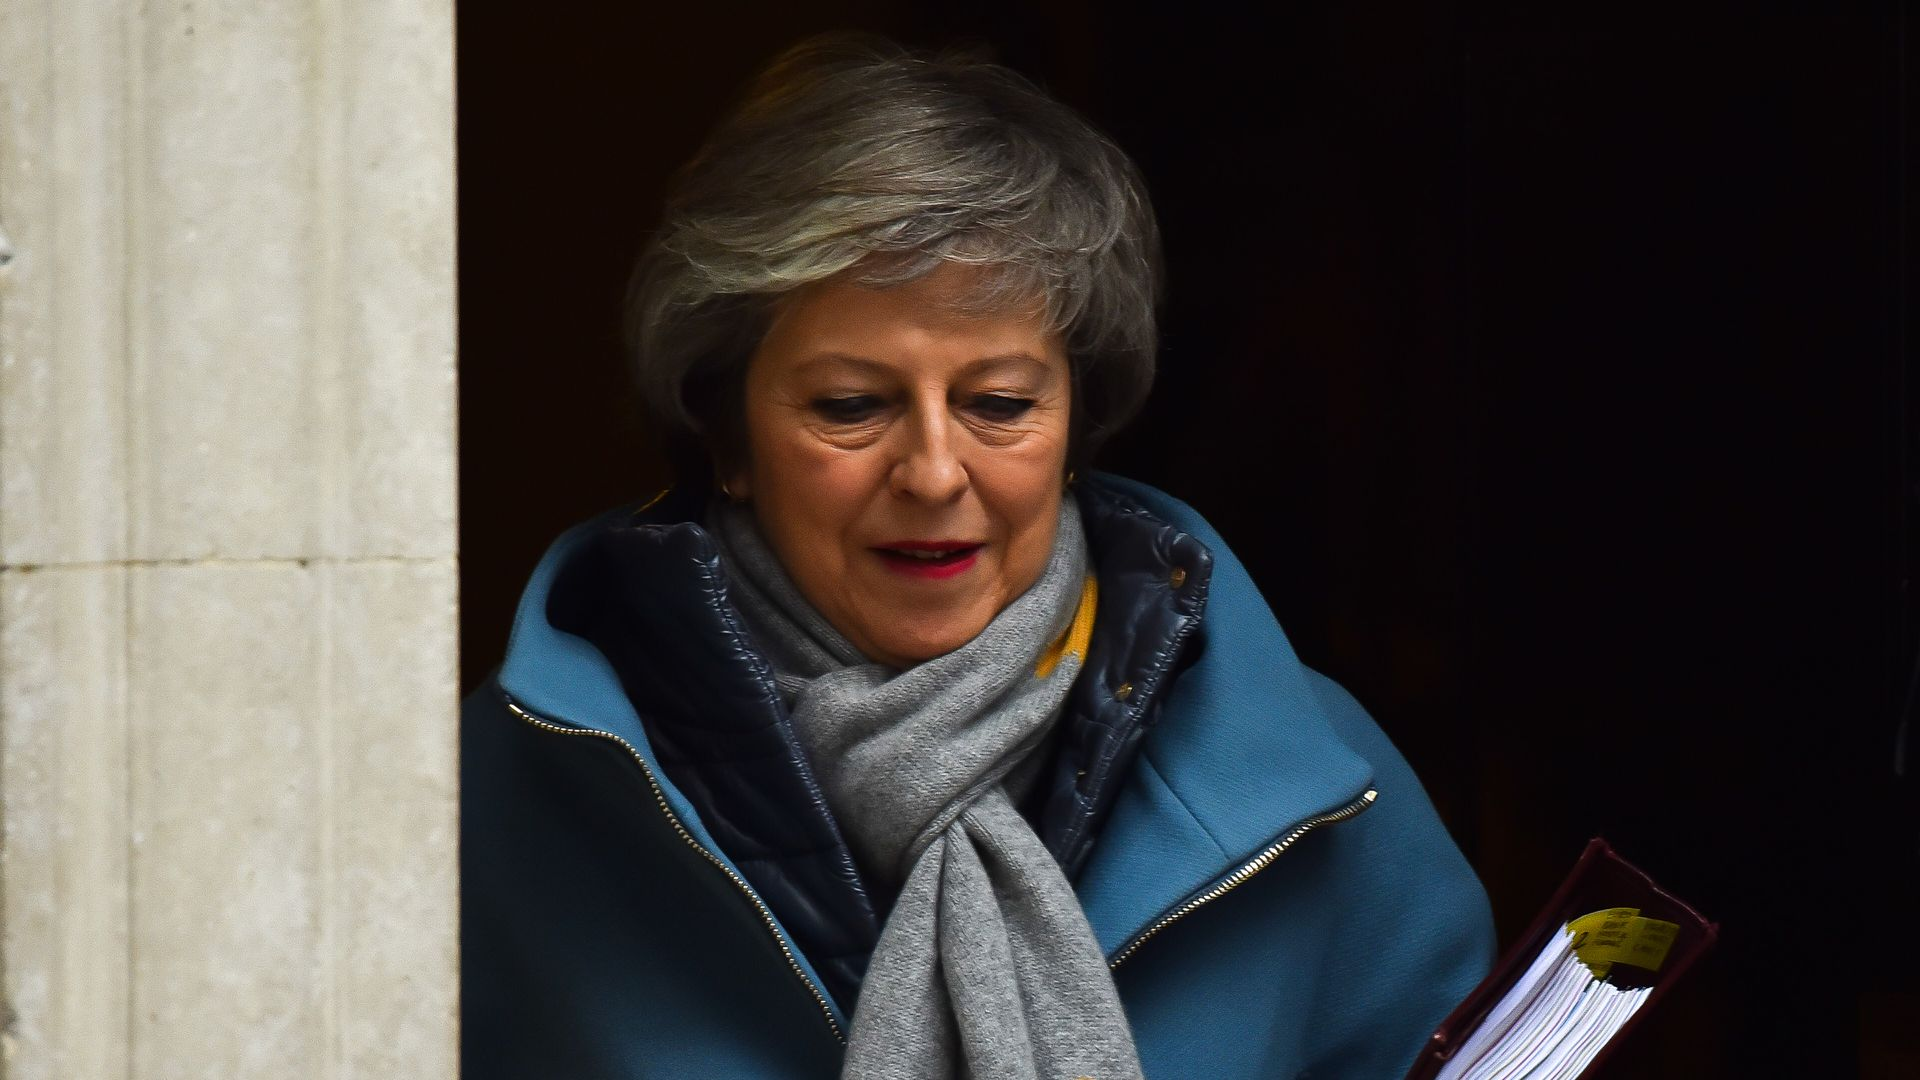 British Prime Minister Theresa May leaves 10 Downing Street to attend the weekly Prime Minister's Questions, London on January 9, 2019.